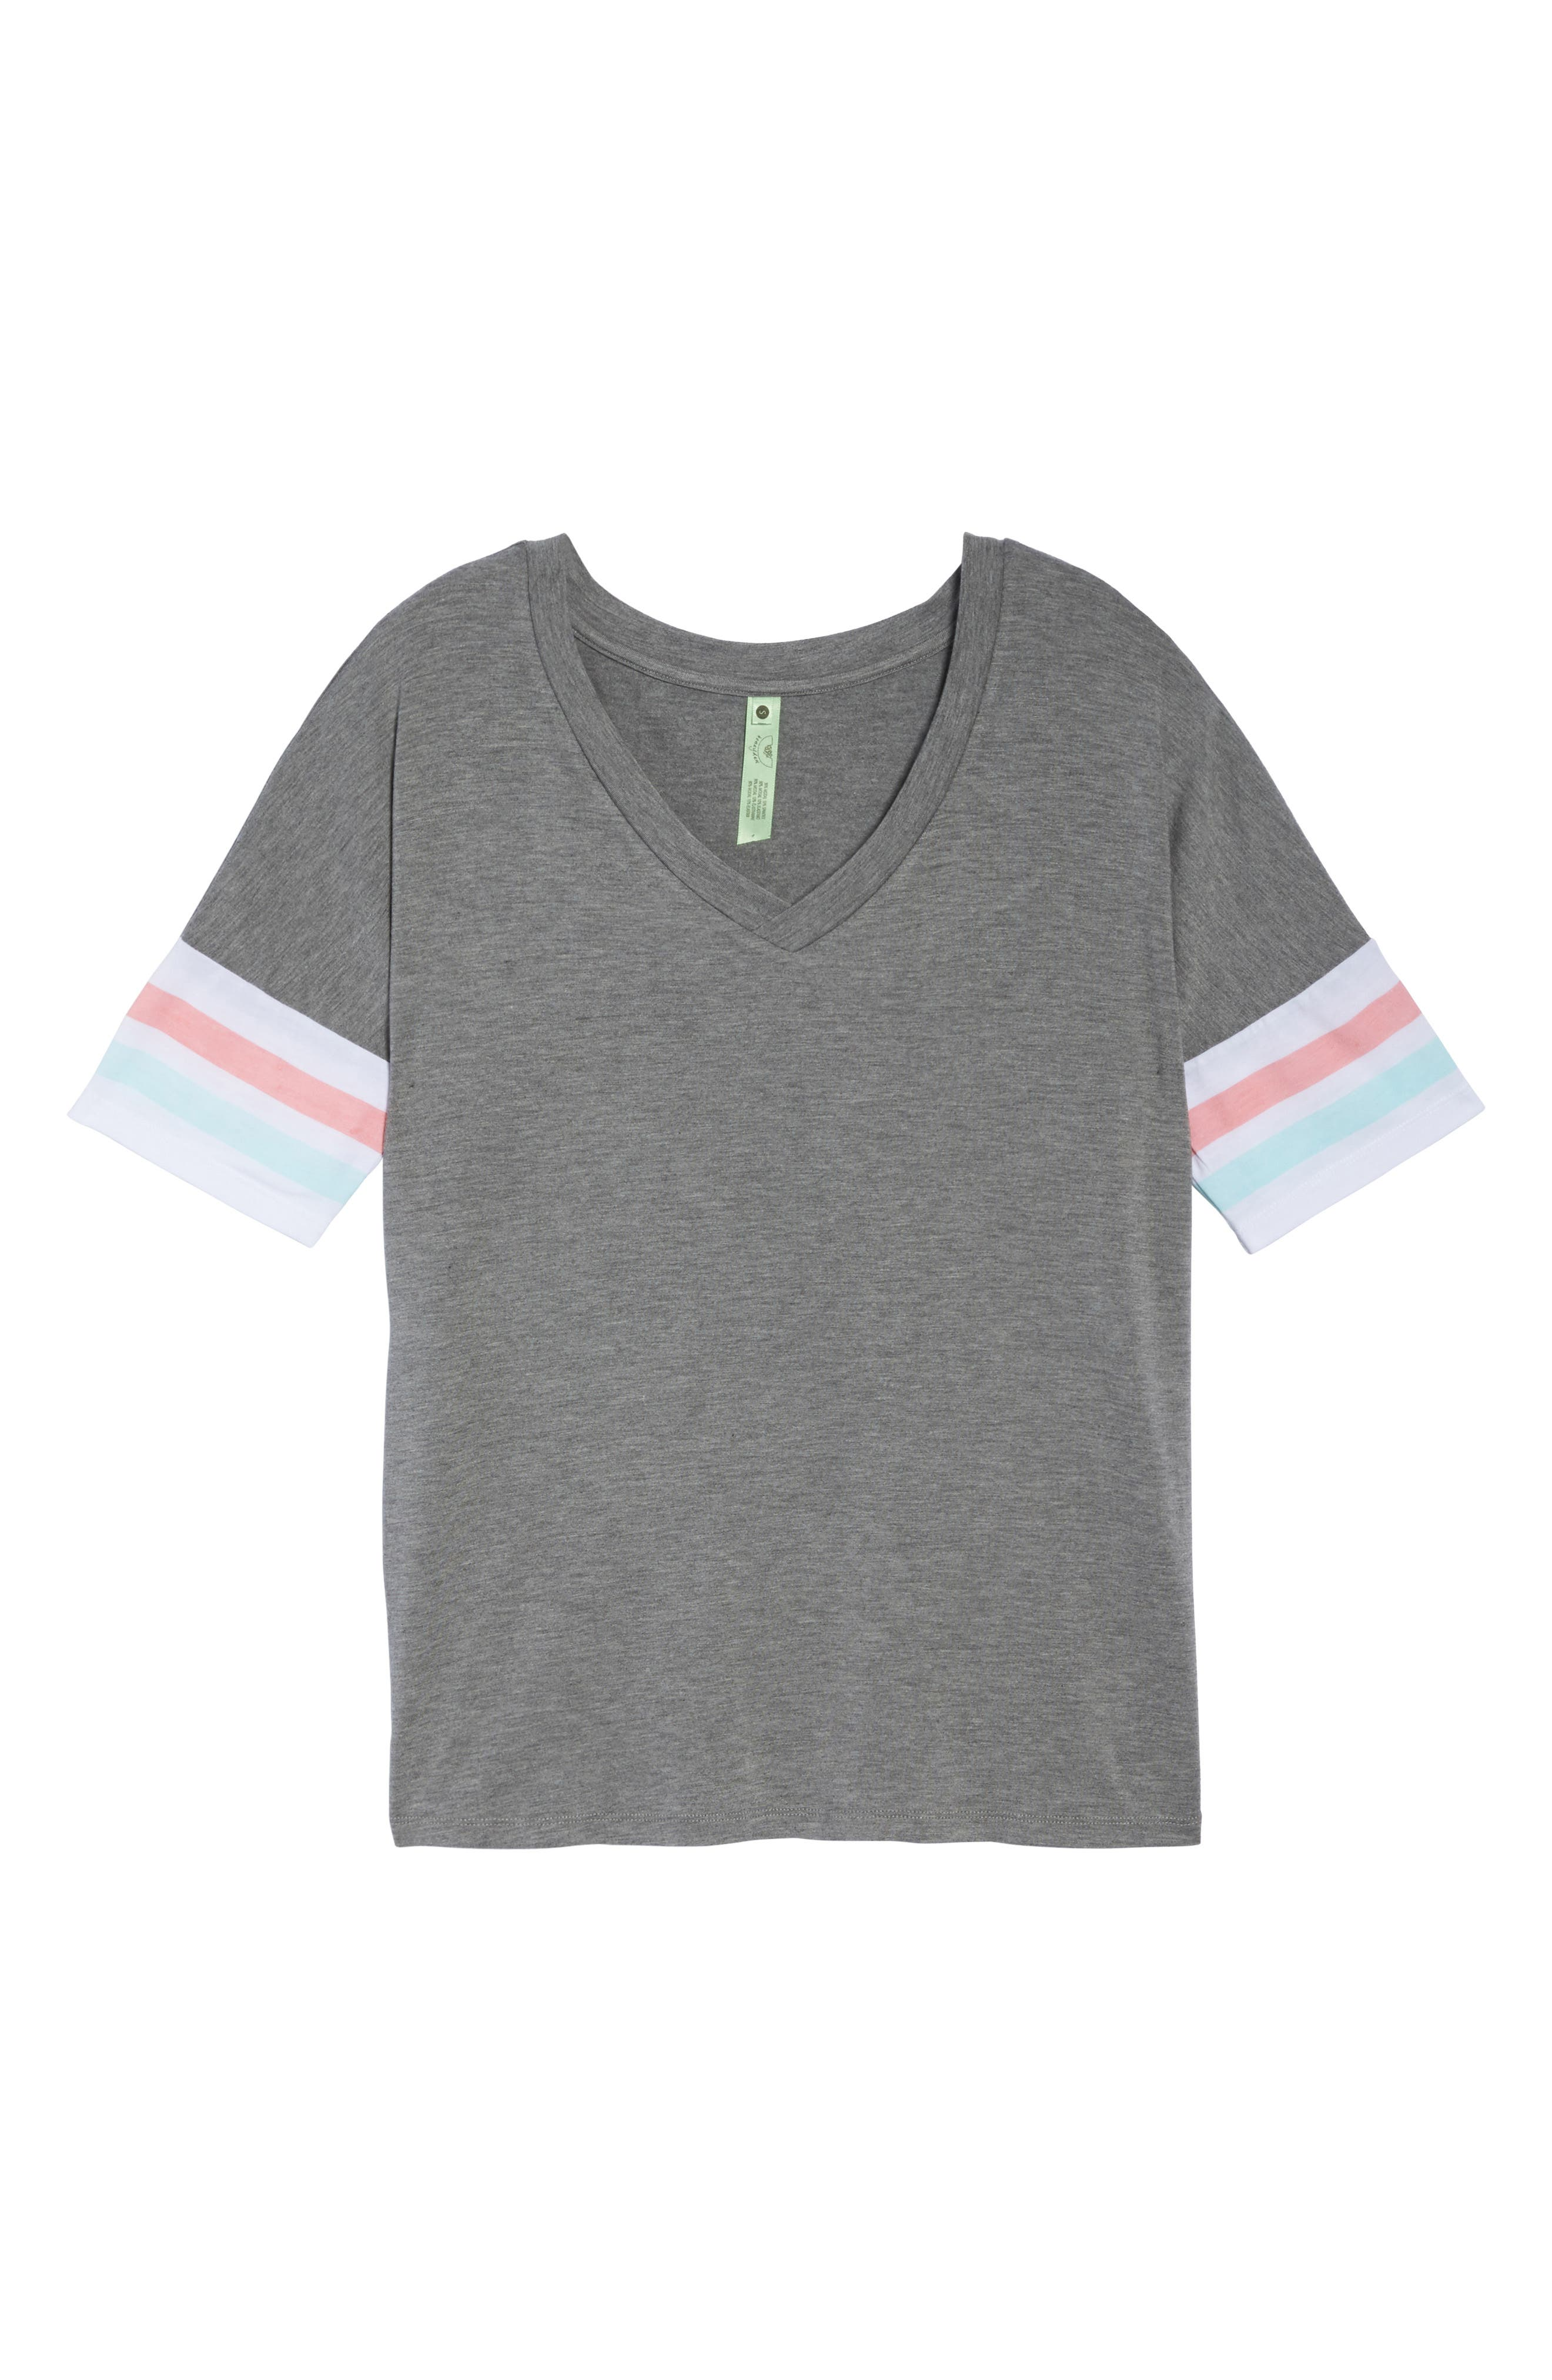 Relaxin' Lounge Tee,                             Alternate thumbnail 6, color,                             053